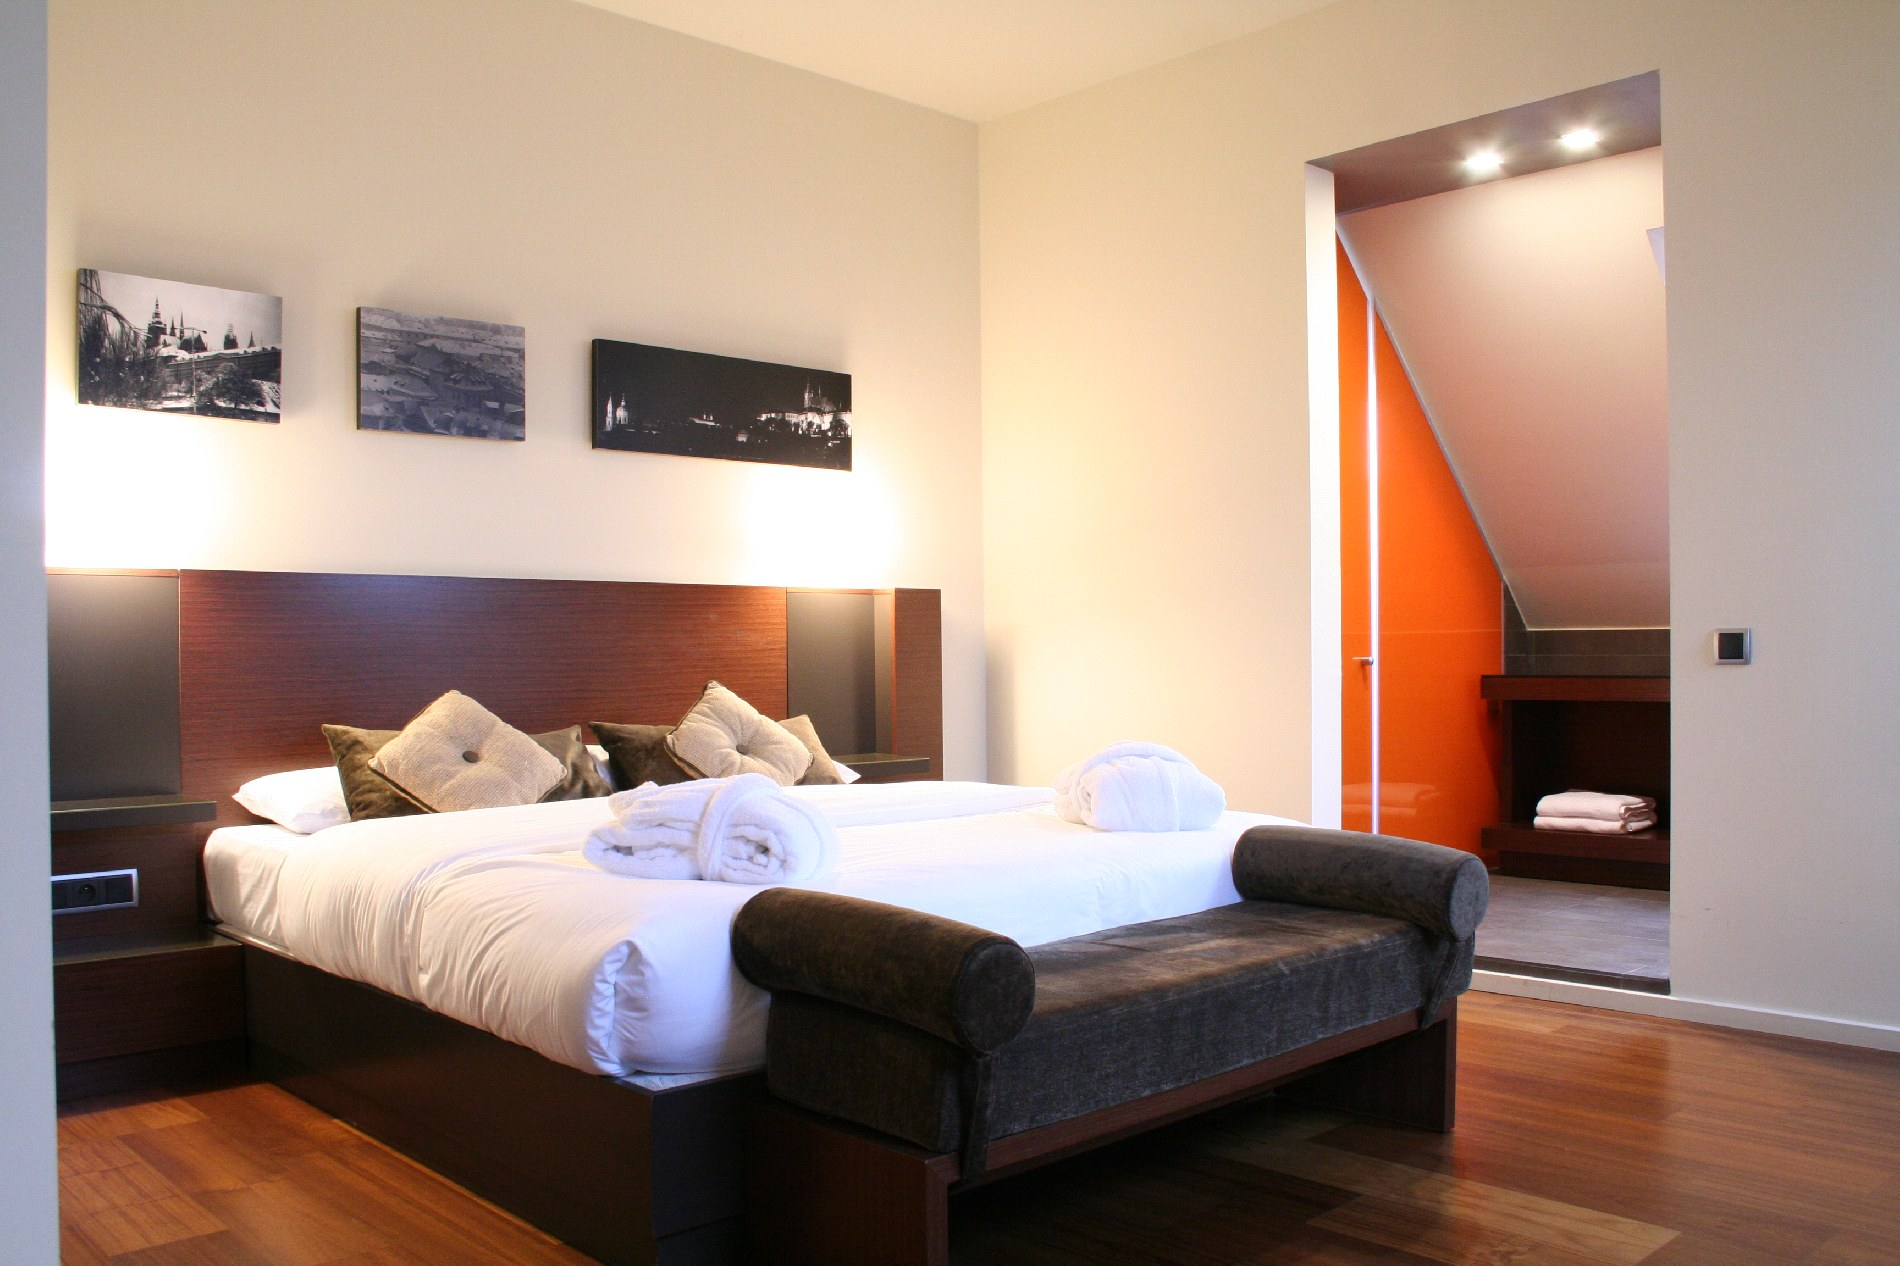 987 design prague hotel hotel near wenceslas square